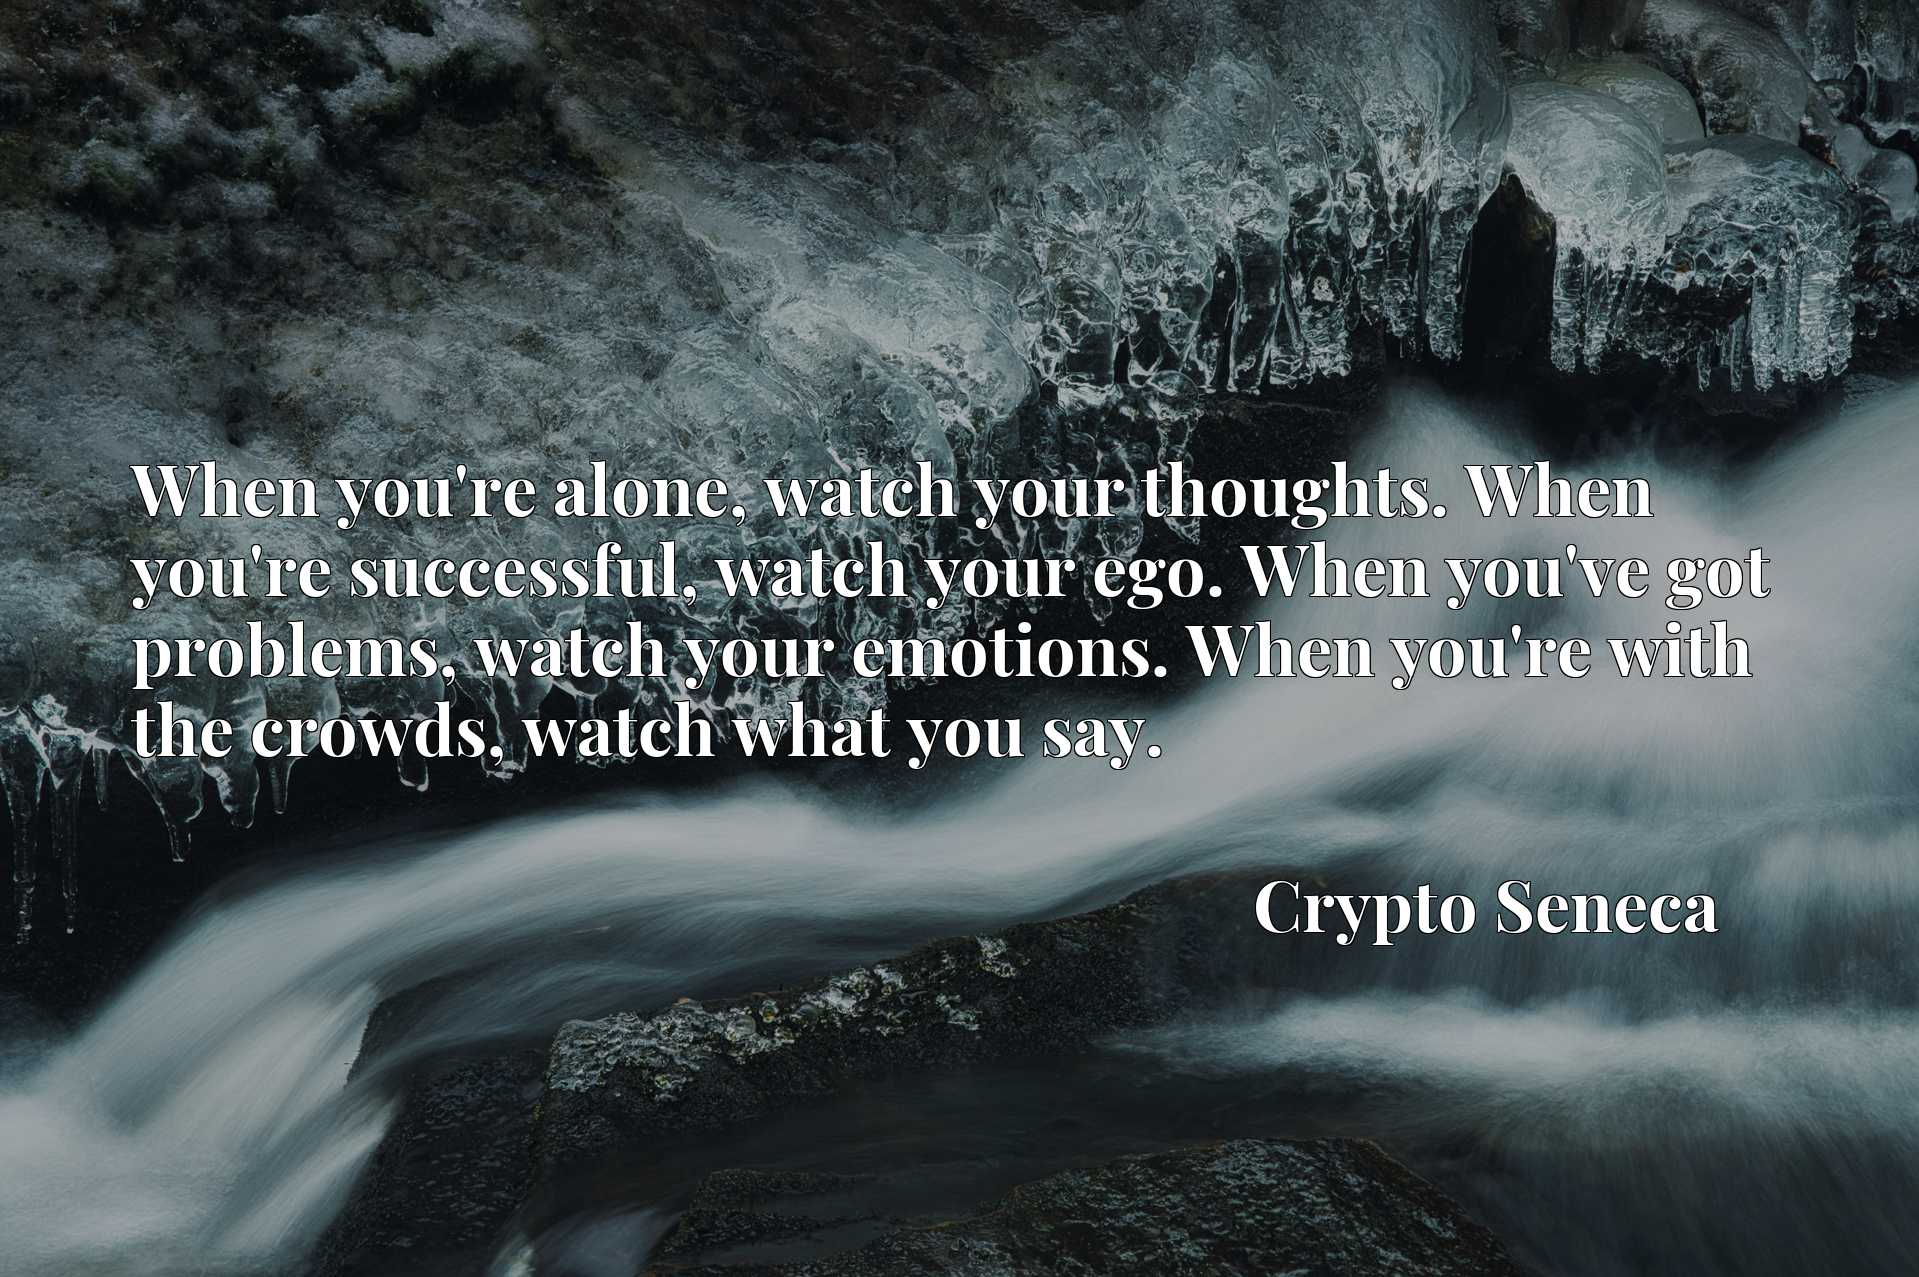 When you're alone, watch your thoughts. When you're successful, watch your ego. When you've got problems, watch your emotions. When you're with the crowds, watch what you say.